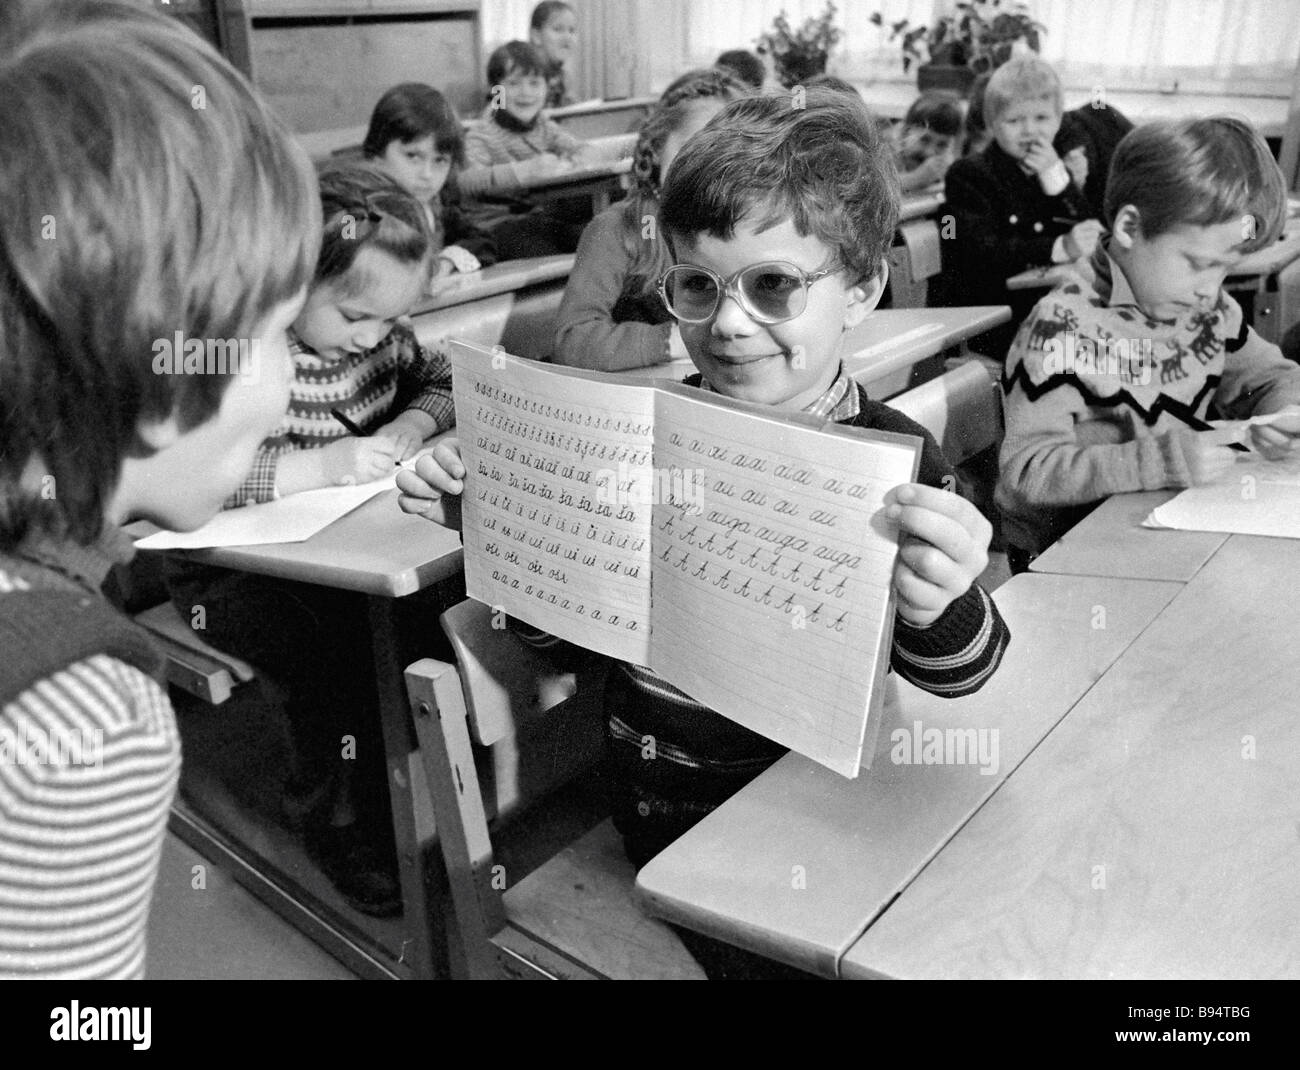 A zero grade pupil showing his notebook to a classmate at secondary school 2 - Stock Image